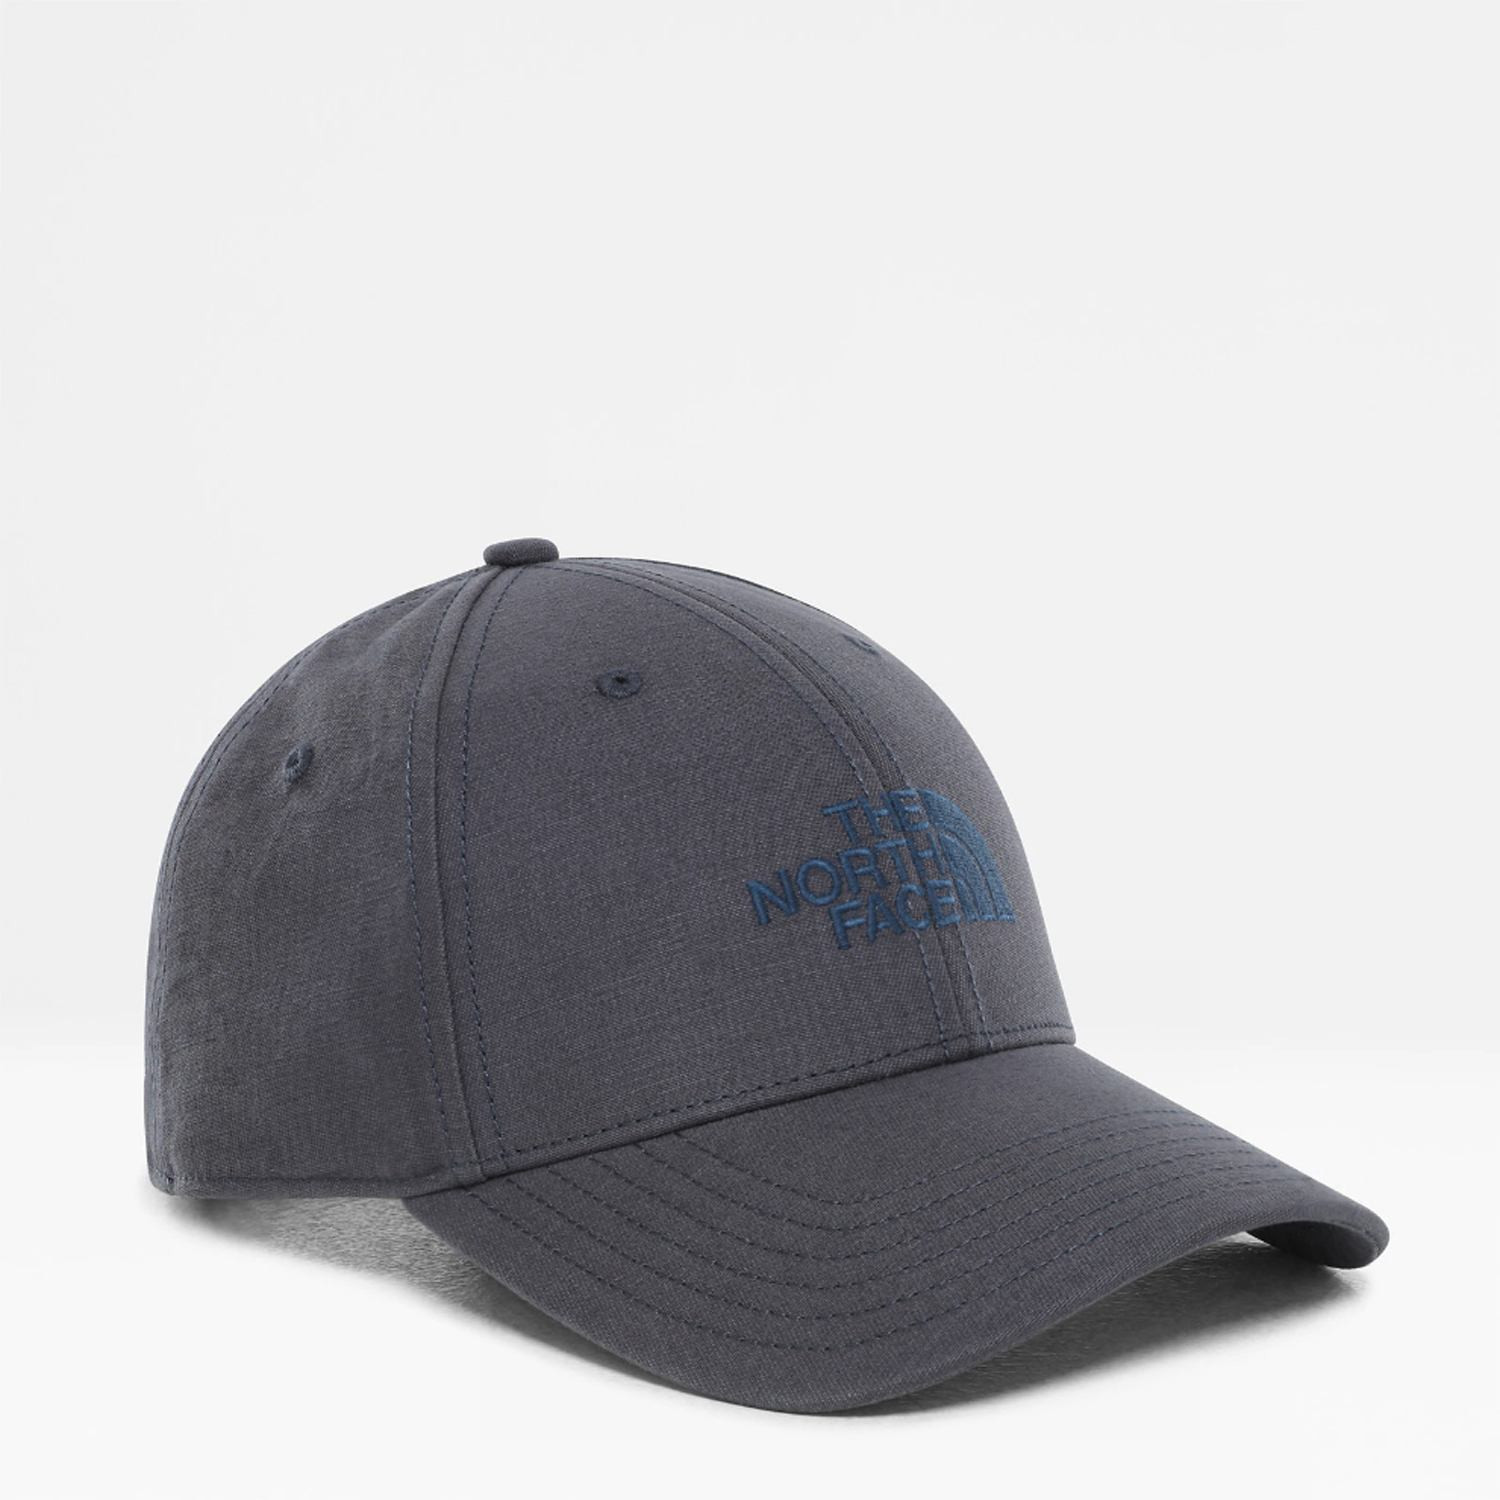 THE NORTH FACE 66 CLASSIC HAT (9000036528_32948)